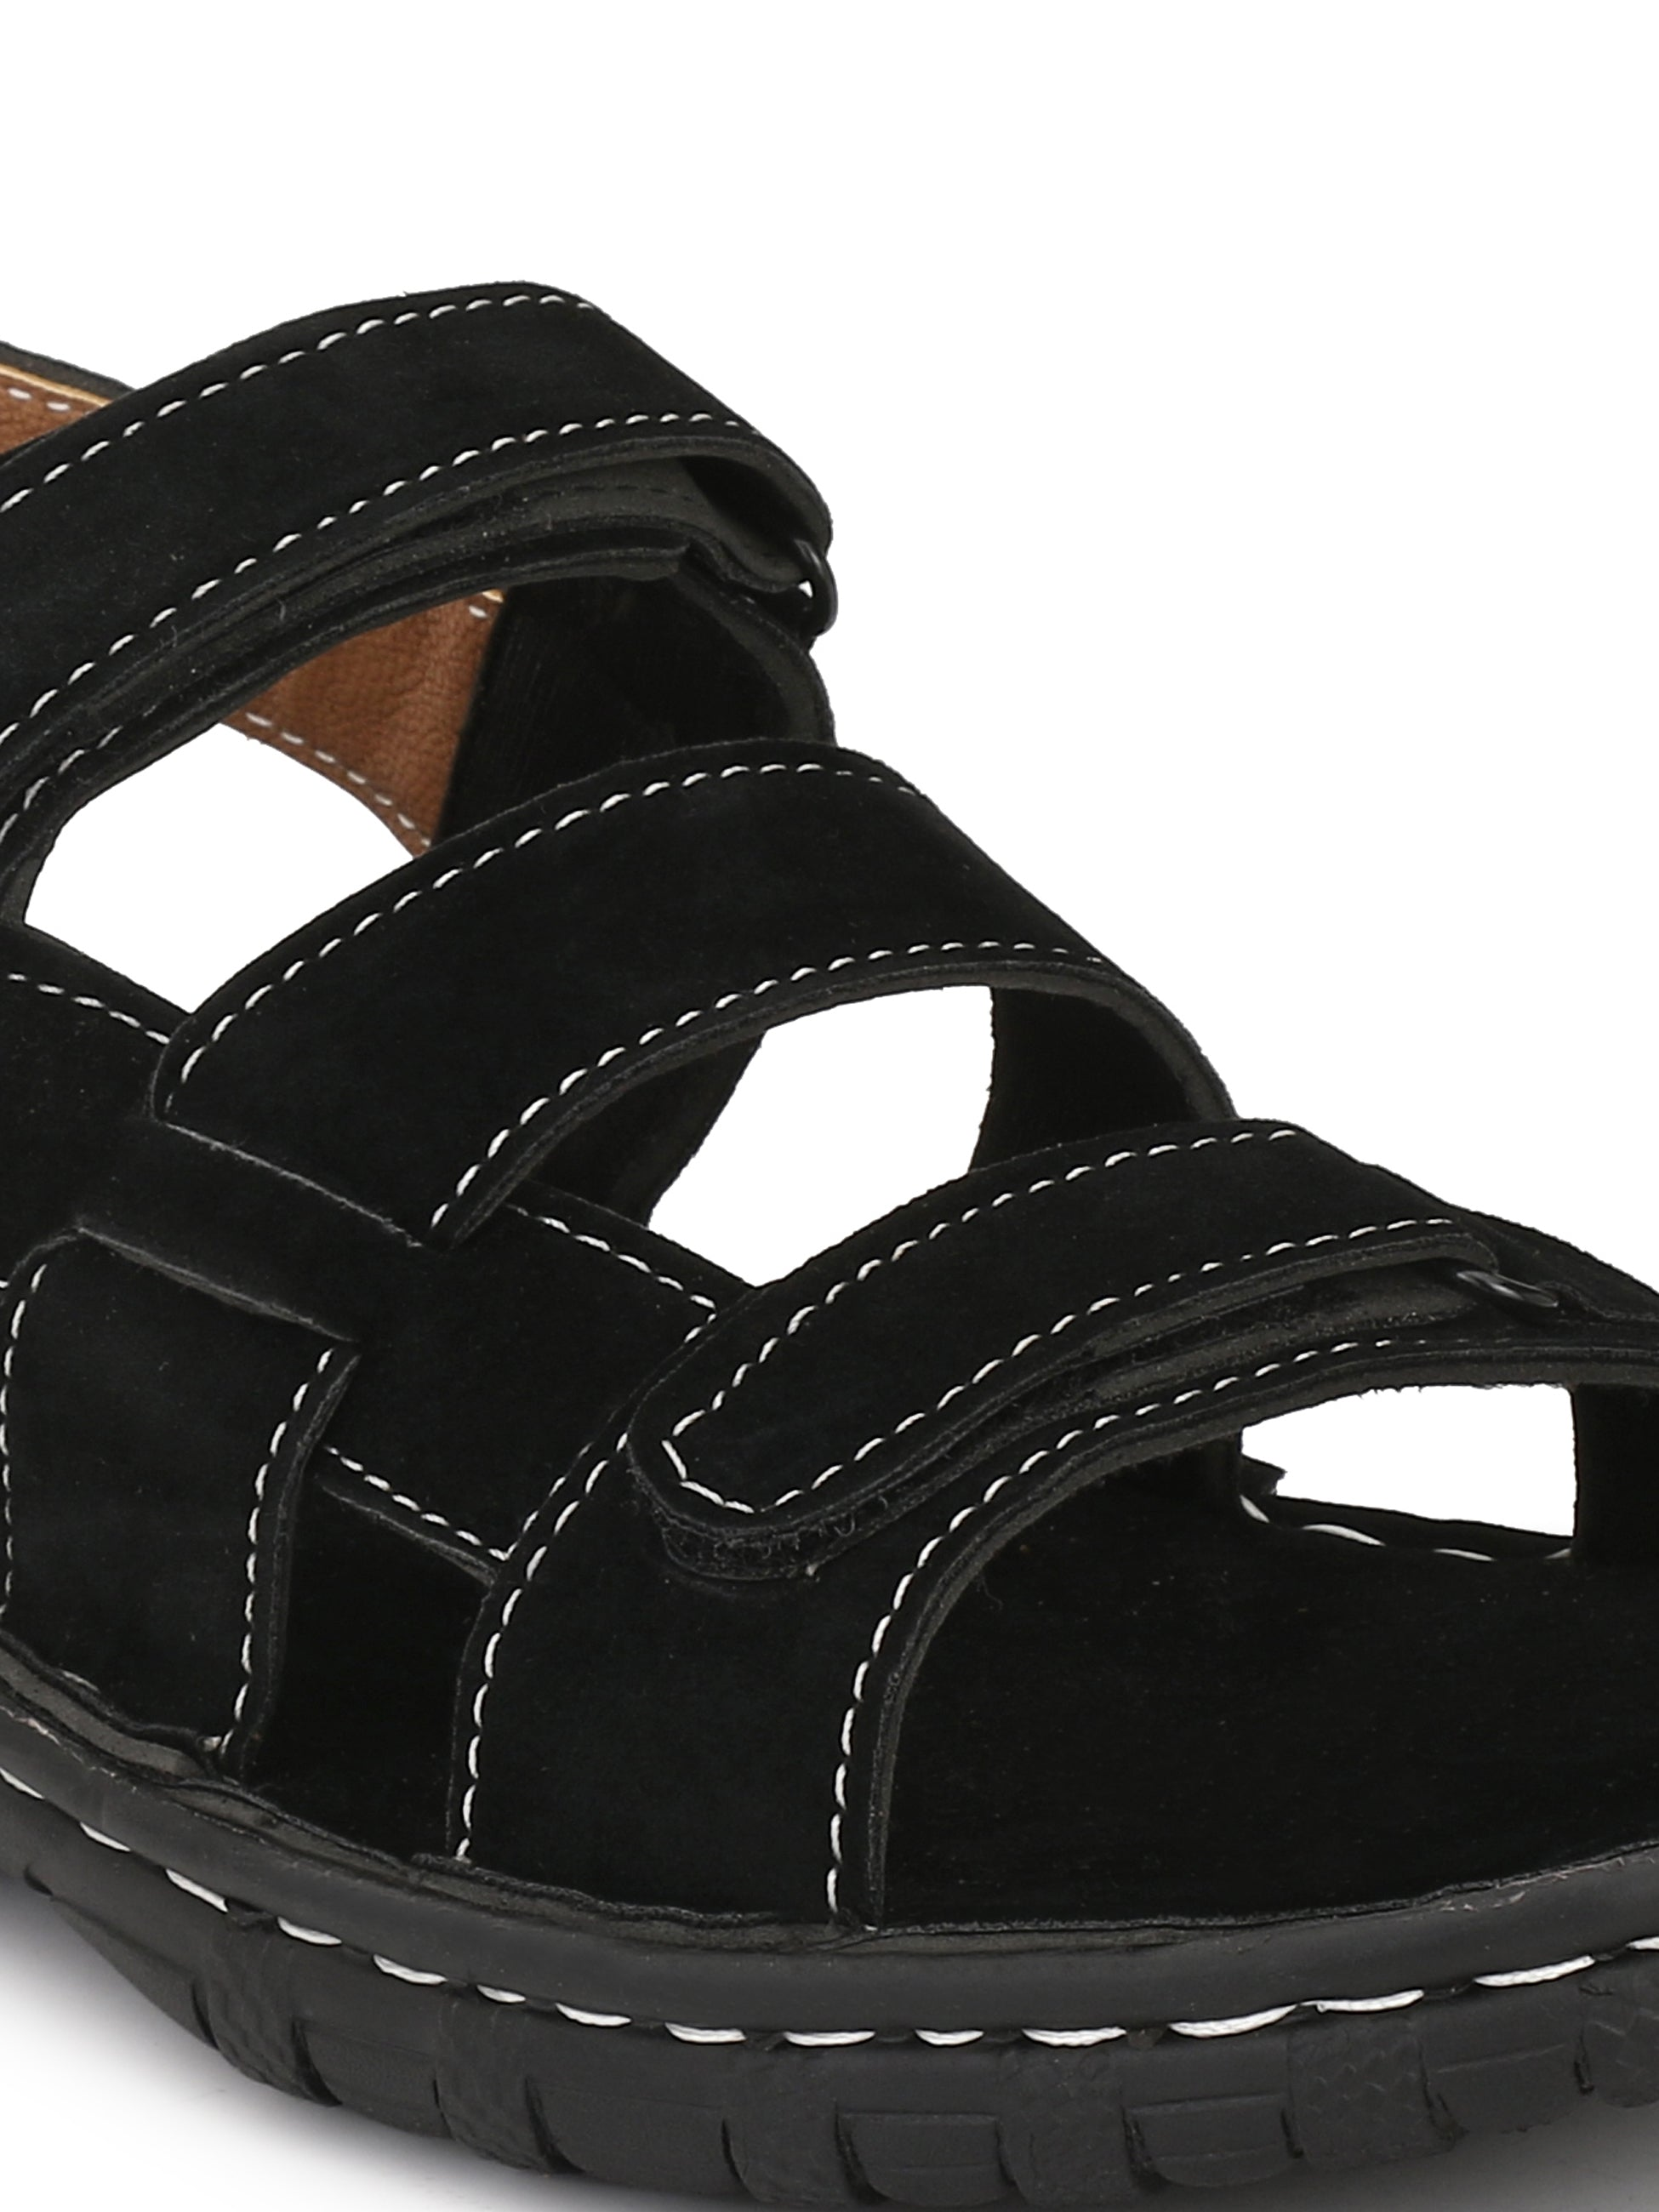 Open Toe Black Strappy Sandals - shoegaro